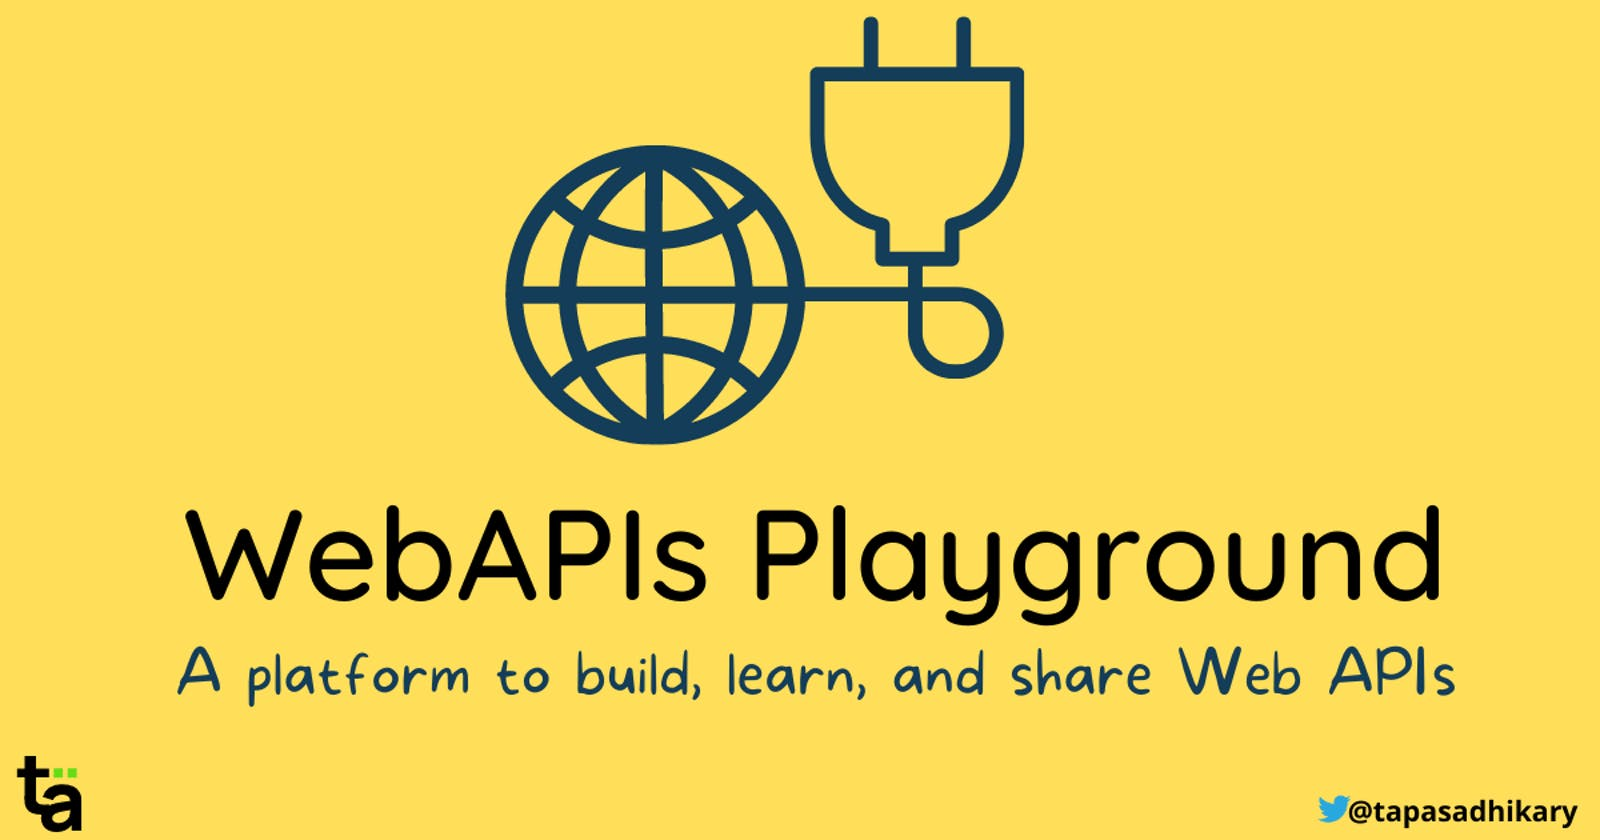 Introducing WebAPIs Playground - An app to play and learn Web APIs